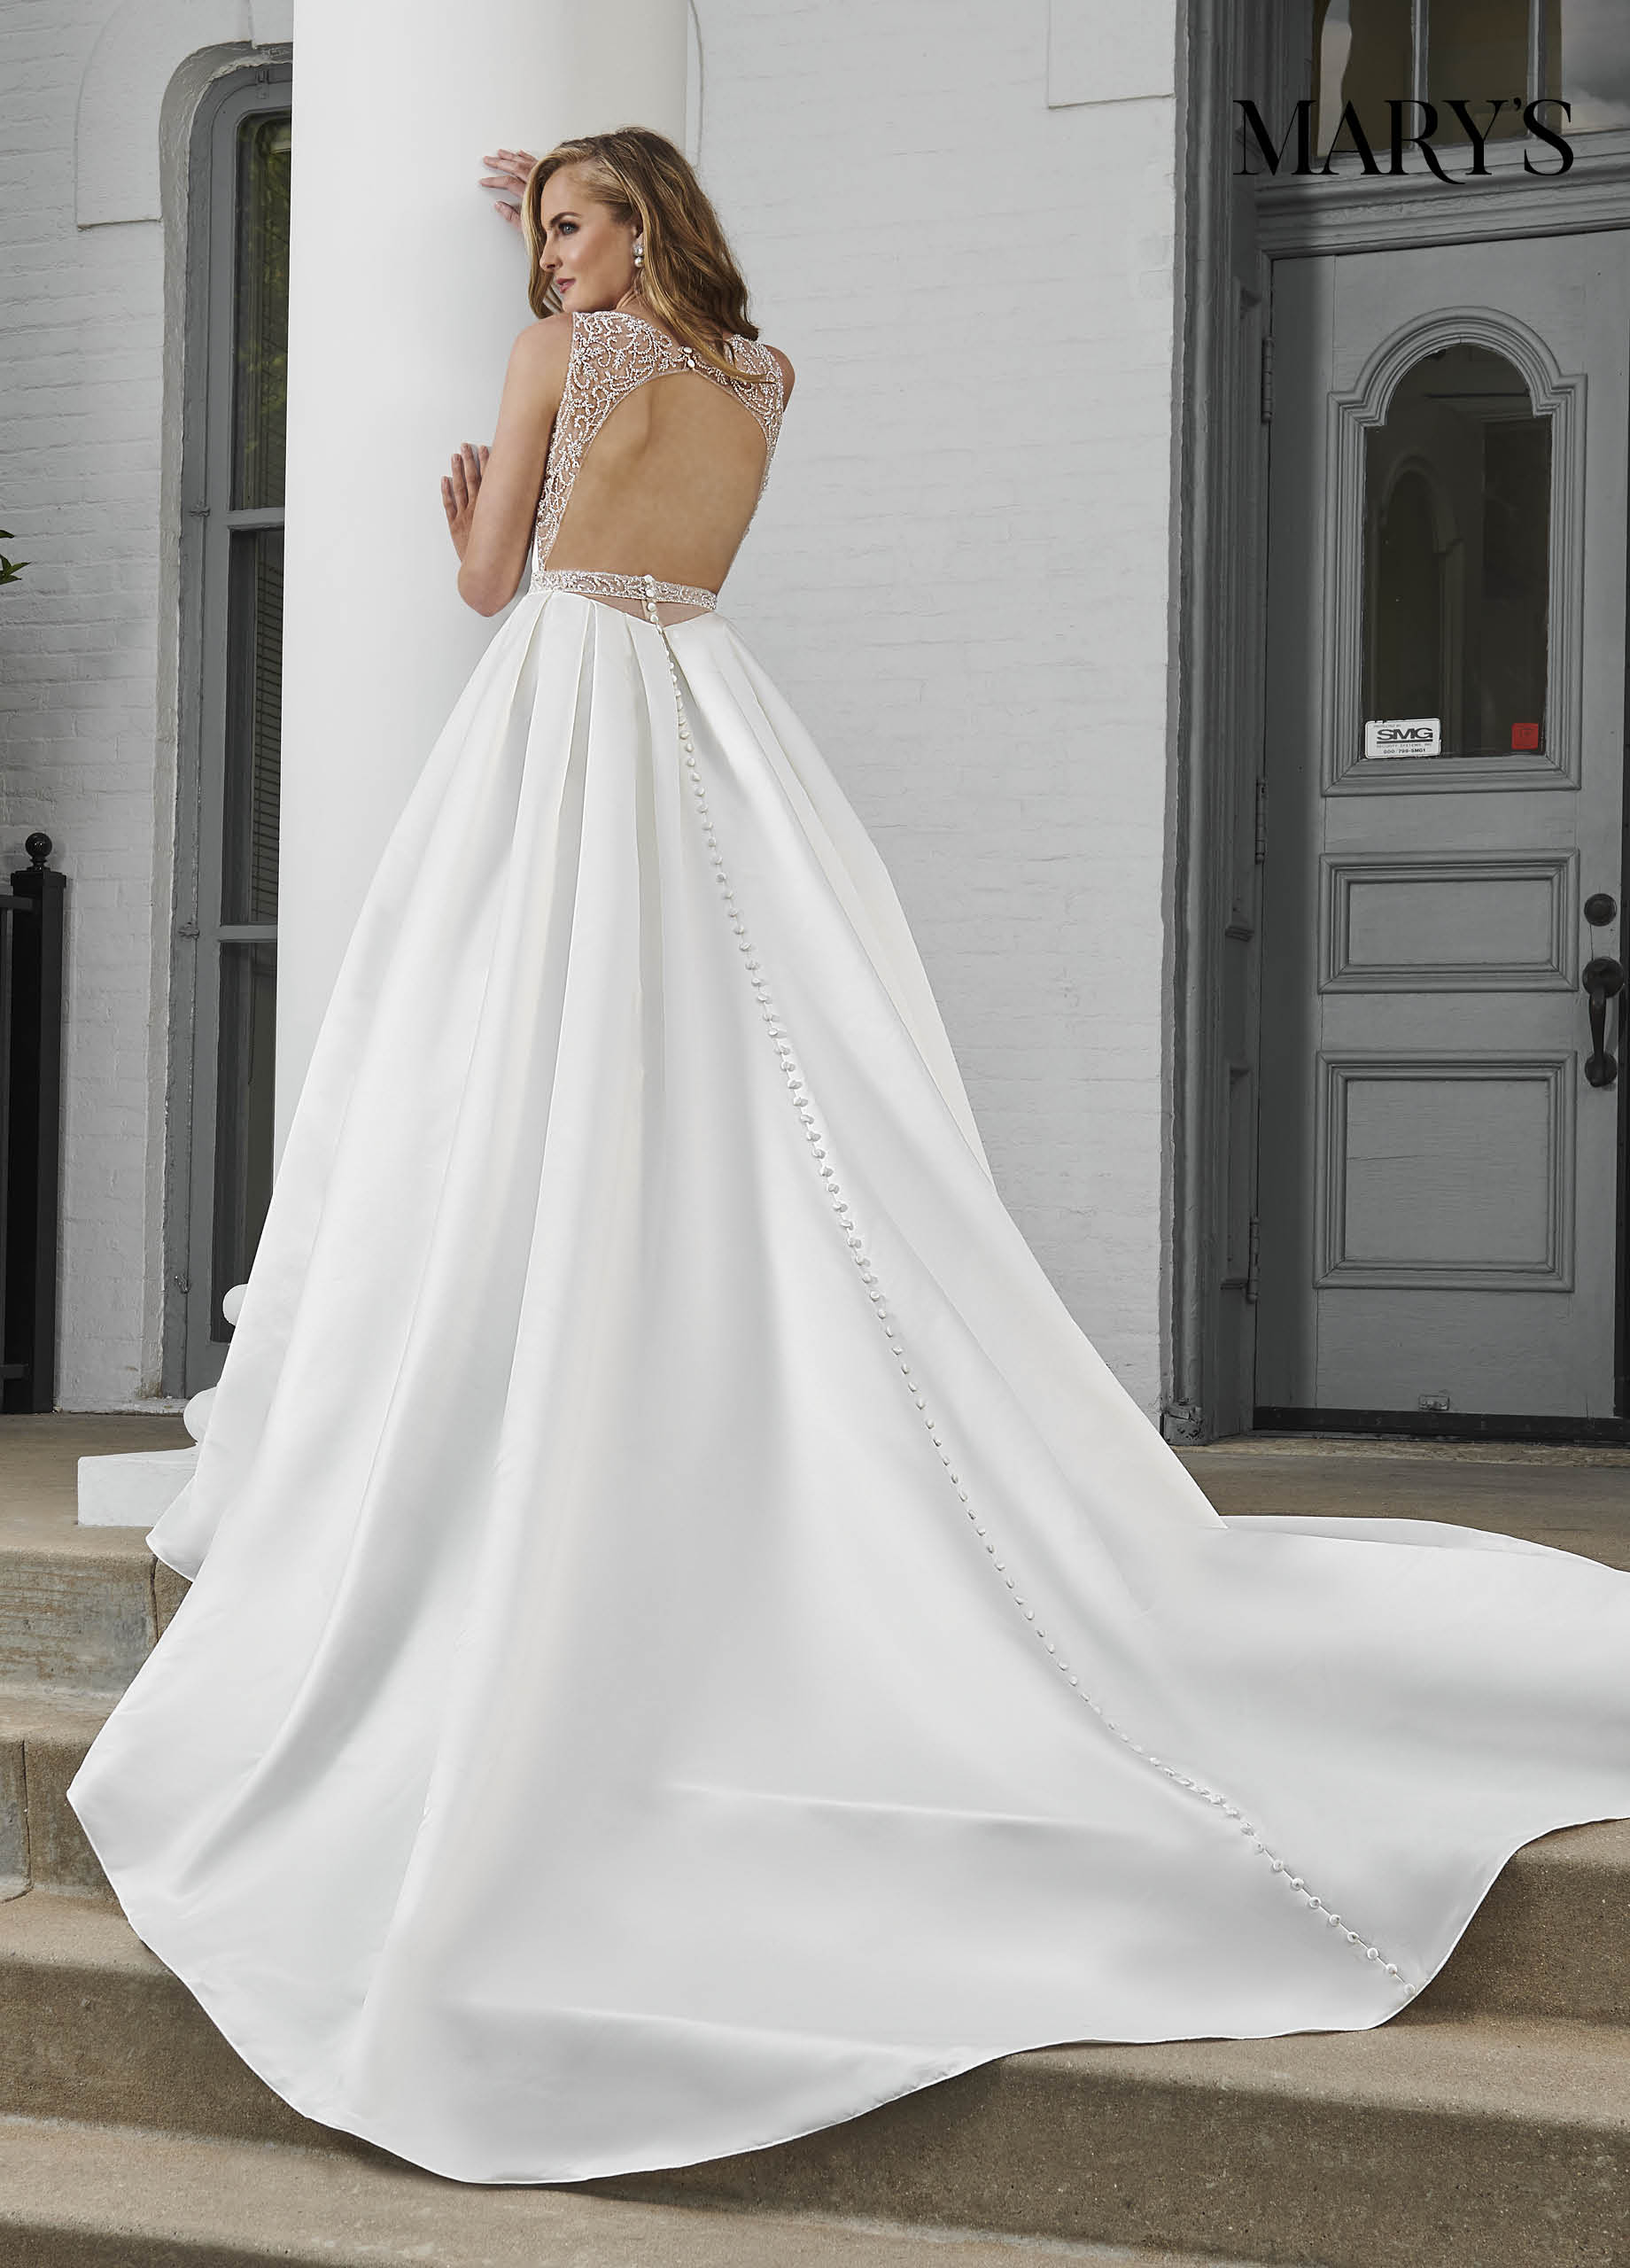 Bridal Wedding Dresses | Mary's | Style - MB3054